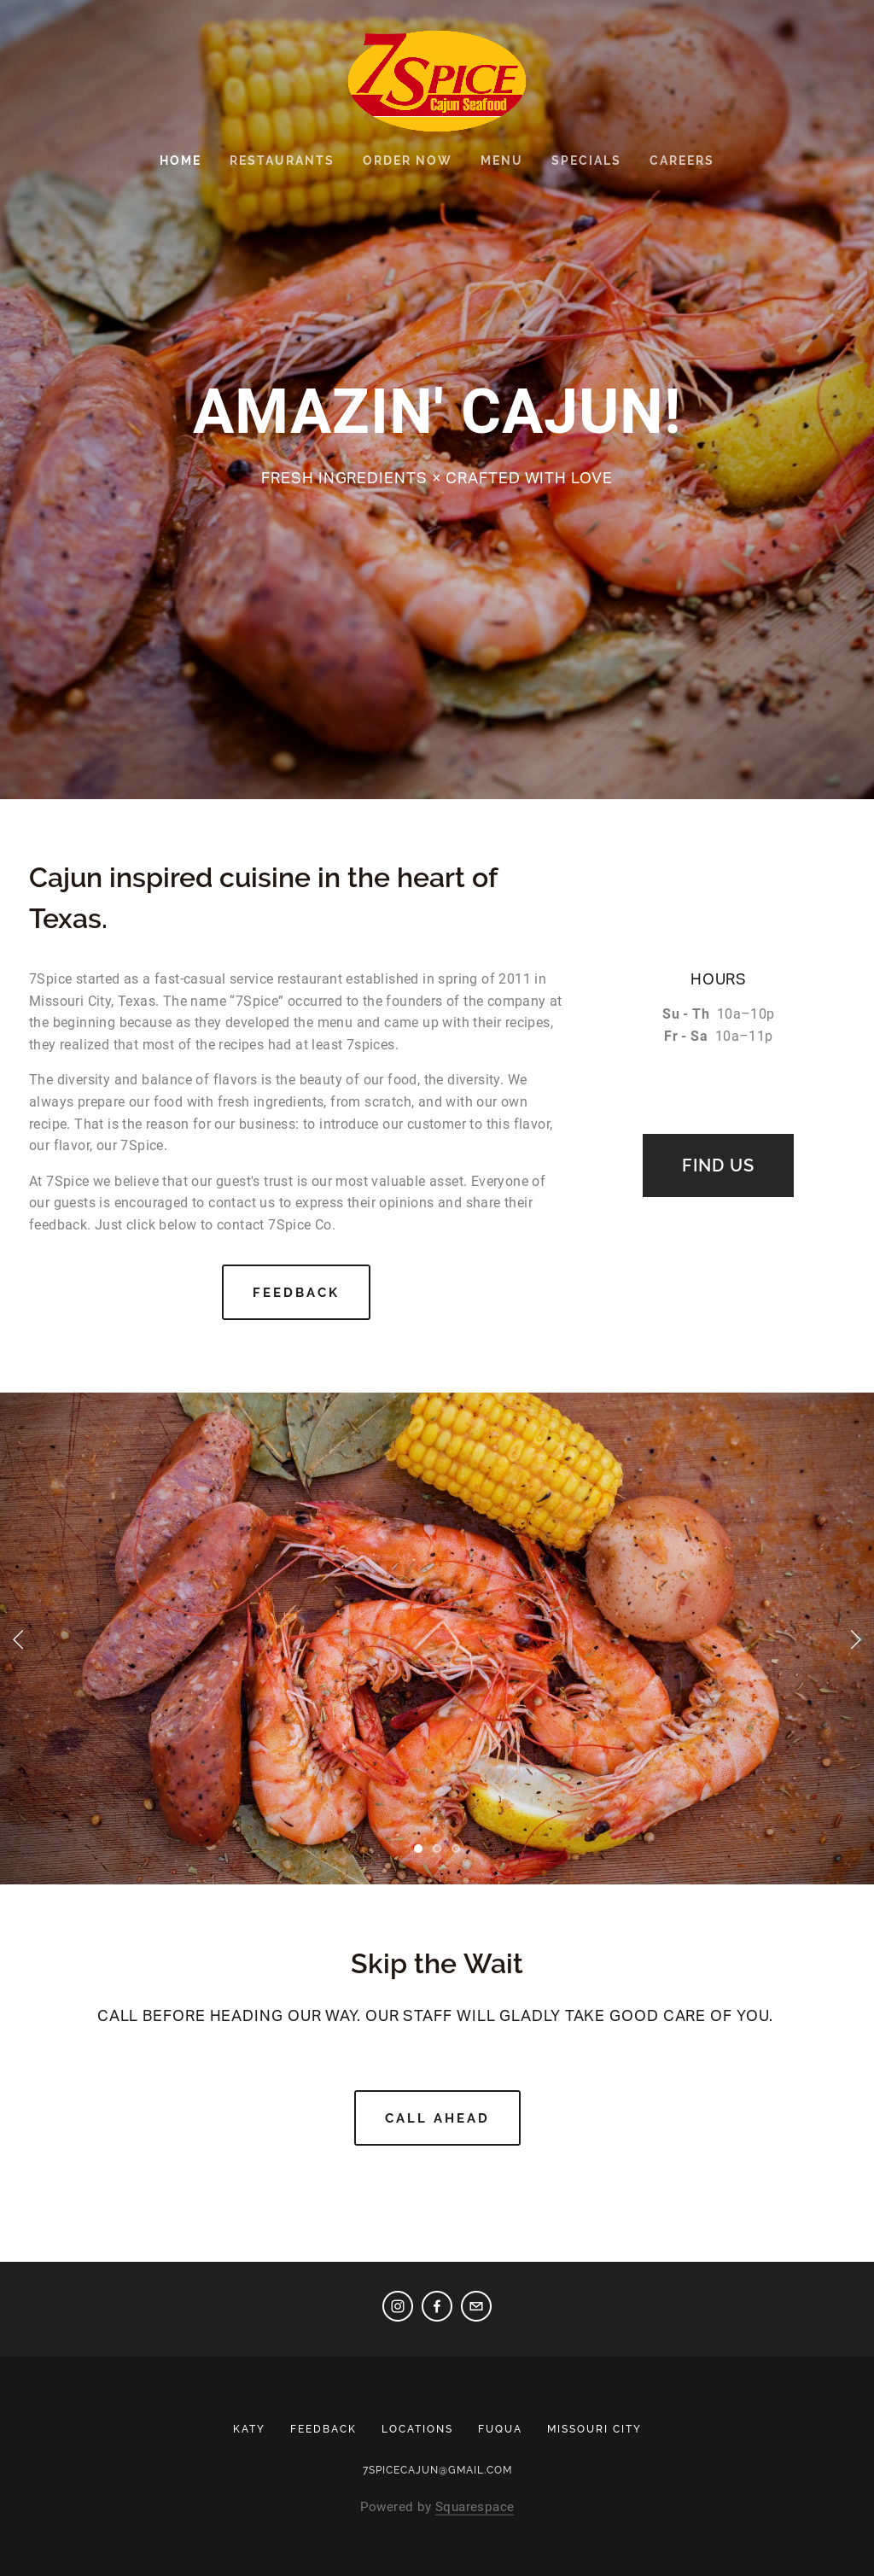 7 Spice Seafood Kitchen Competitors, Revenue and Employees - Owler ...